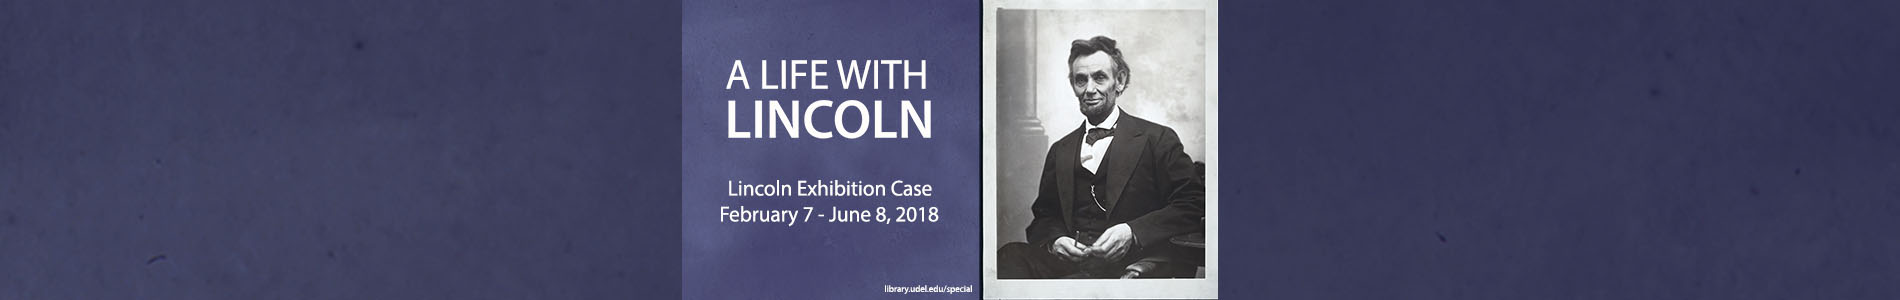 Banner Image for A Life With Lincoln